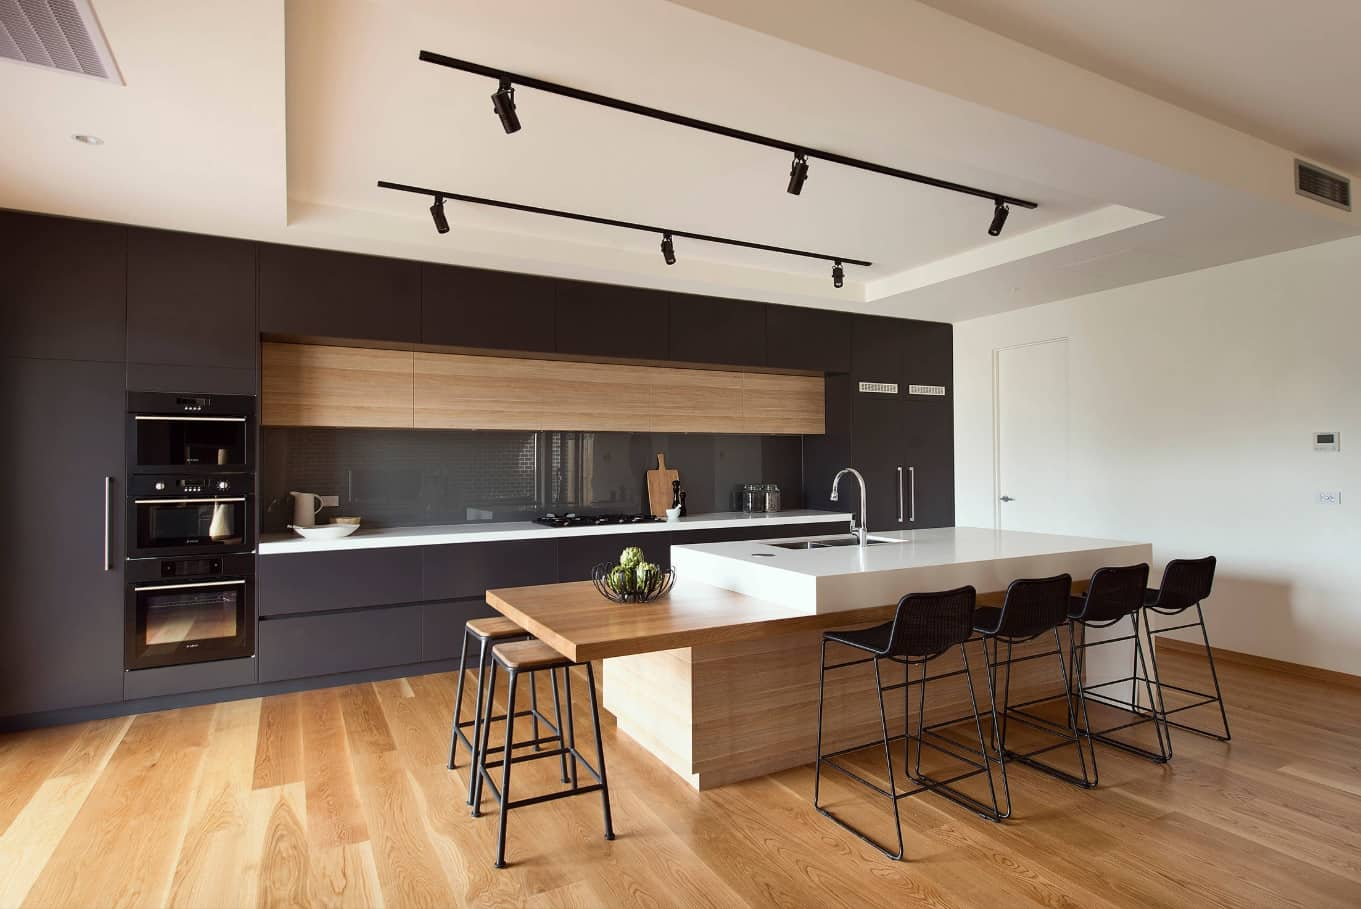 10 Amazing Ways to Give Your Kitchen a New Look. High tech interior with rod lighting, wooden material to finish